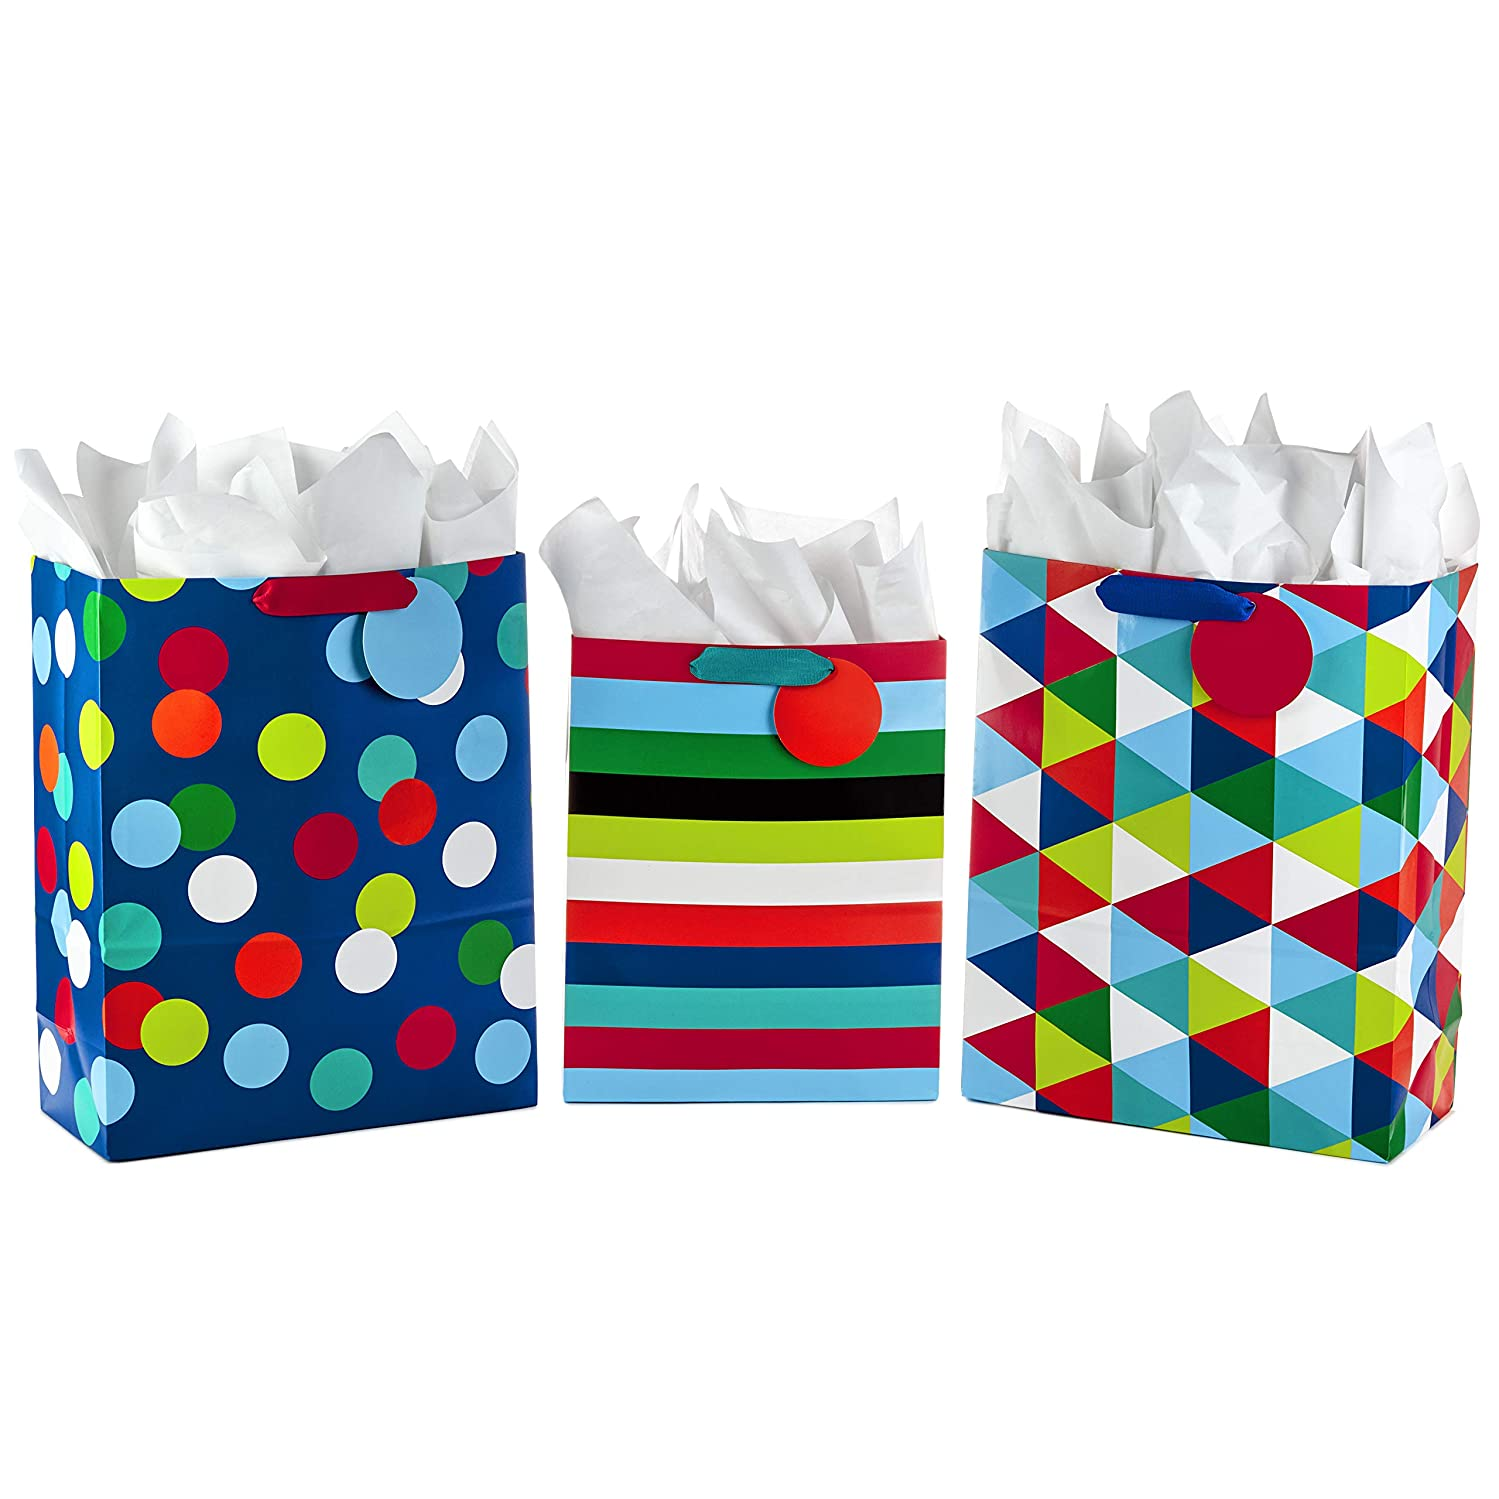 Hallmark Large and Extra Large Gift Bags Assortment with Tissue Paper for Birthdays, Father's Day, Graduations or Any Occasion (Pack of 3 - Celebrate)